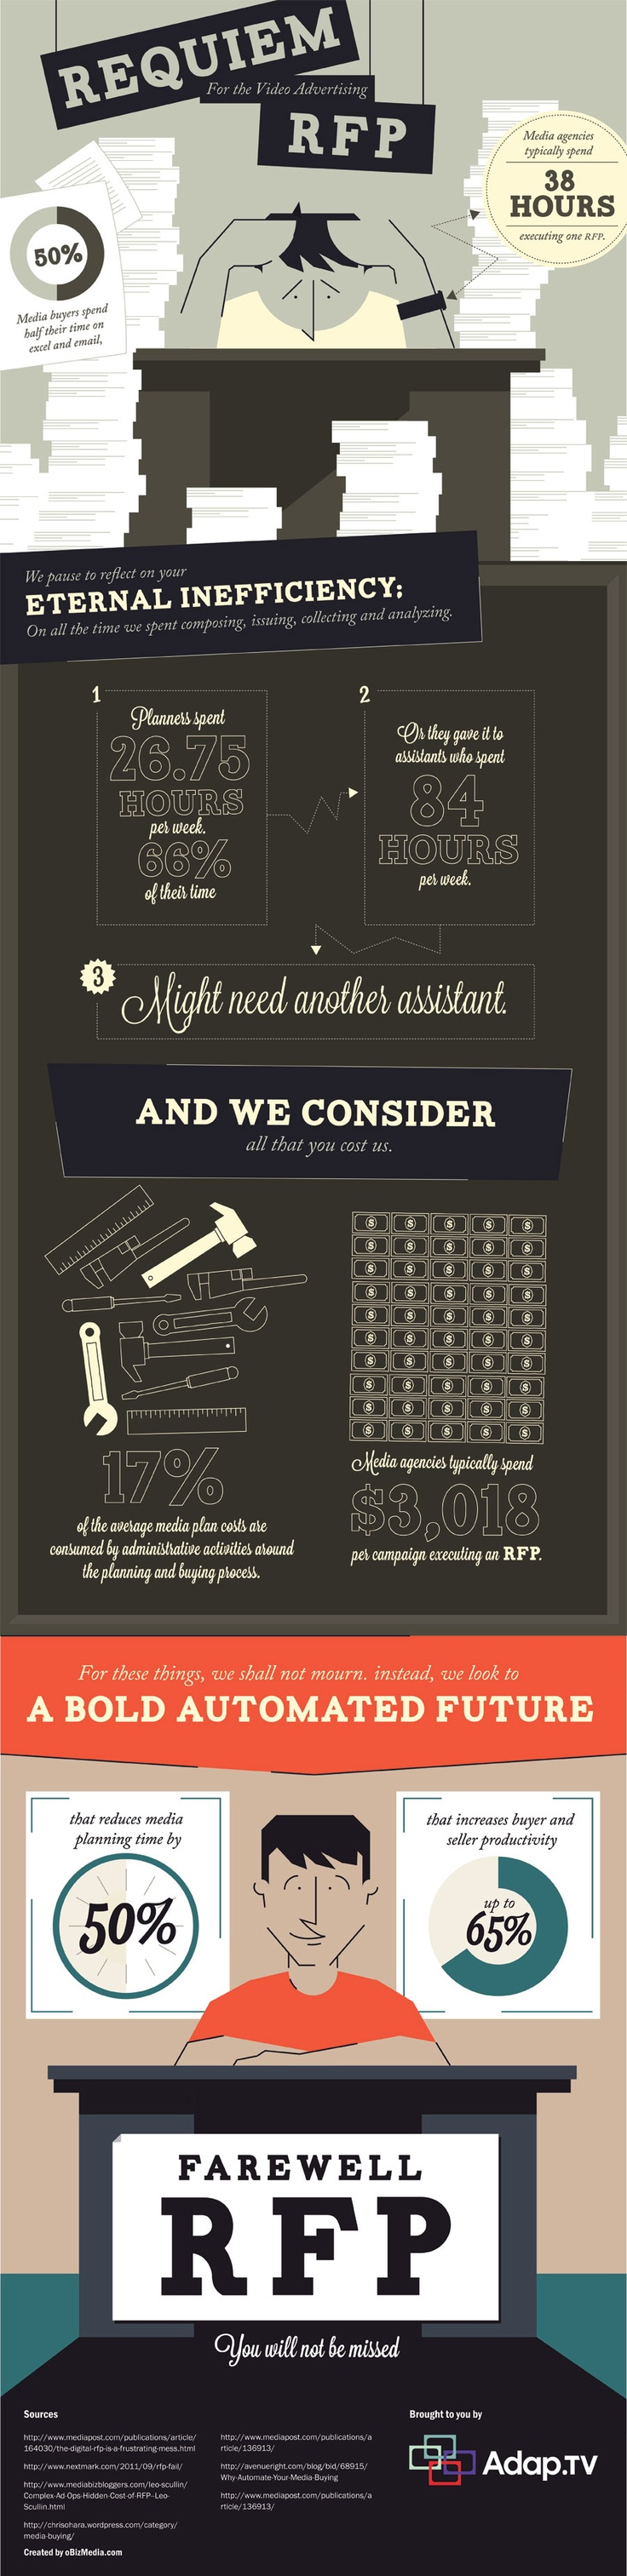 Infographic u201cRequiem for the Video Advertising RFPu201d